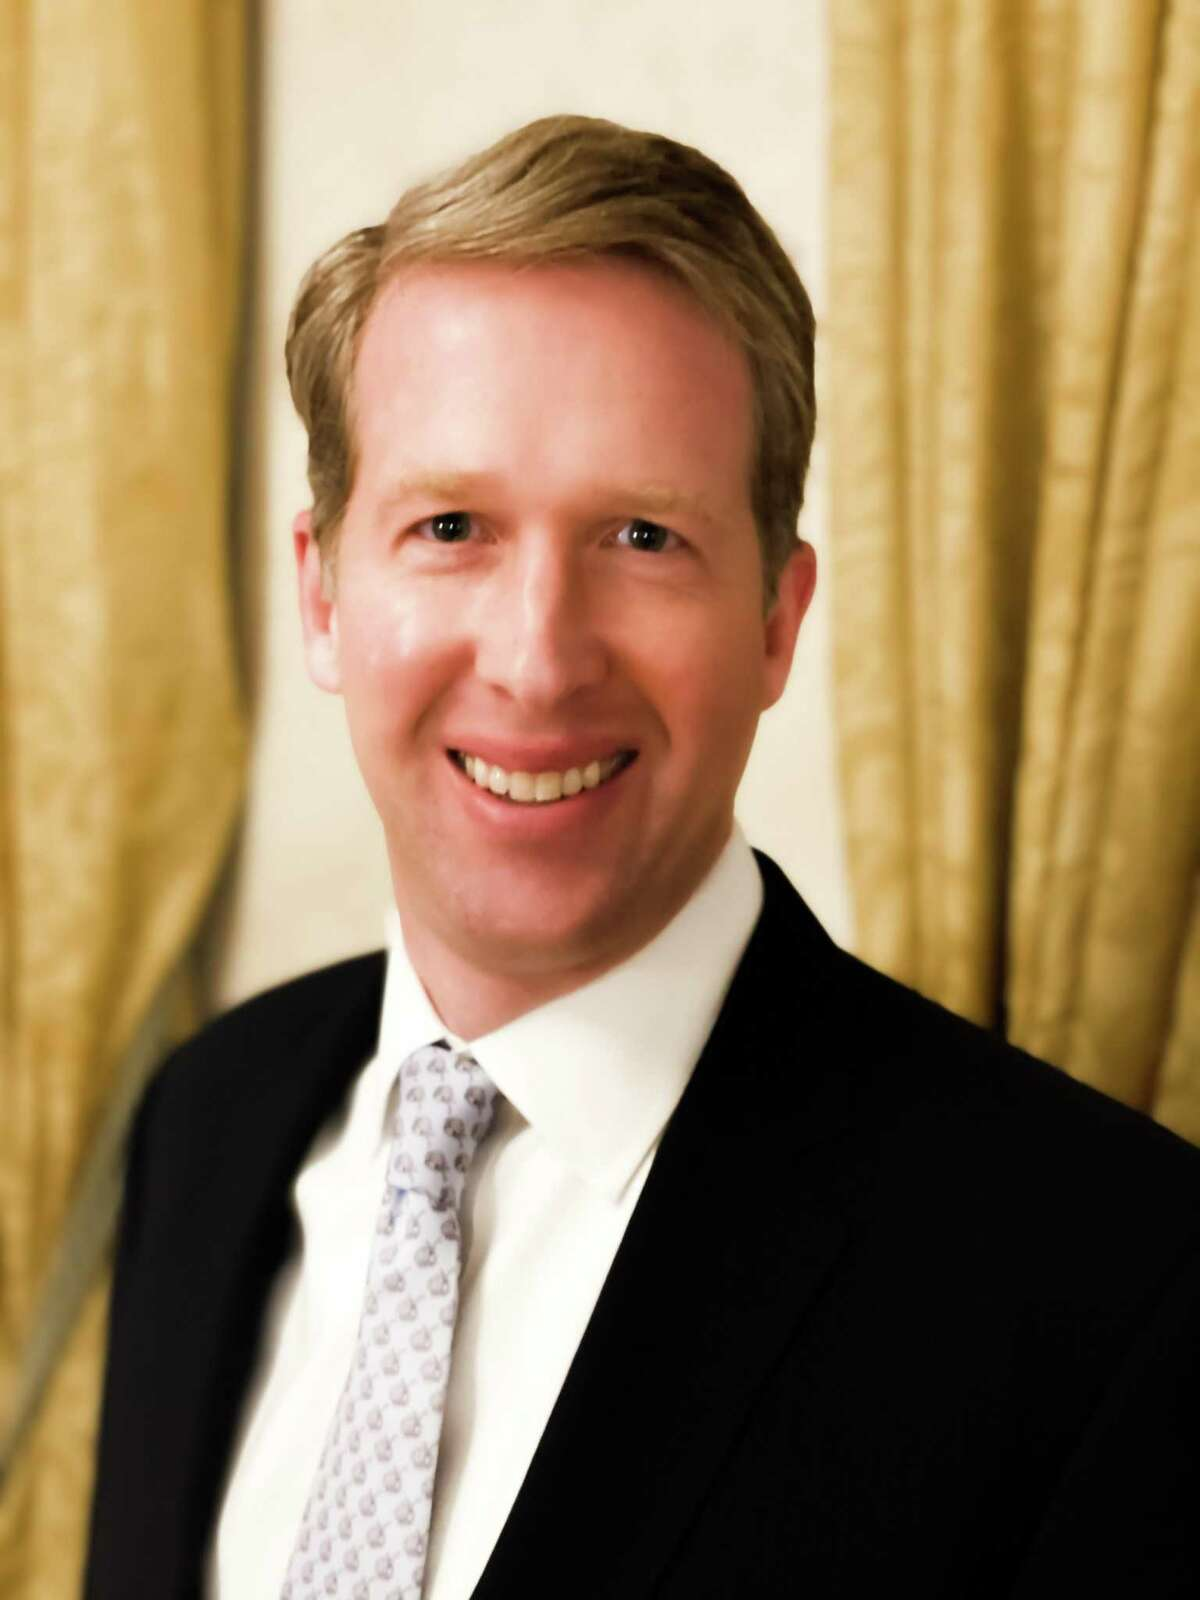 After a five-month nationwide search, the George & Barbara Bush Foundation named Maxmillian Angerholzer III its new CEO Thursday.